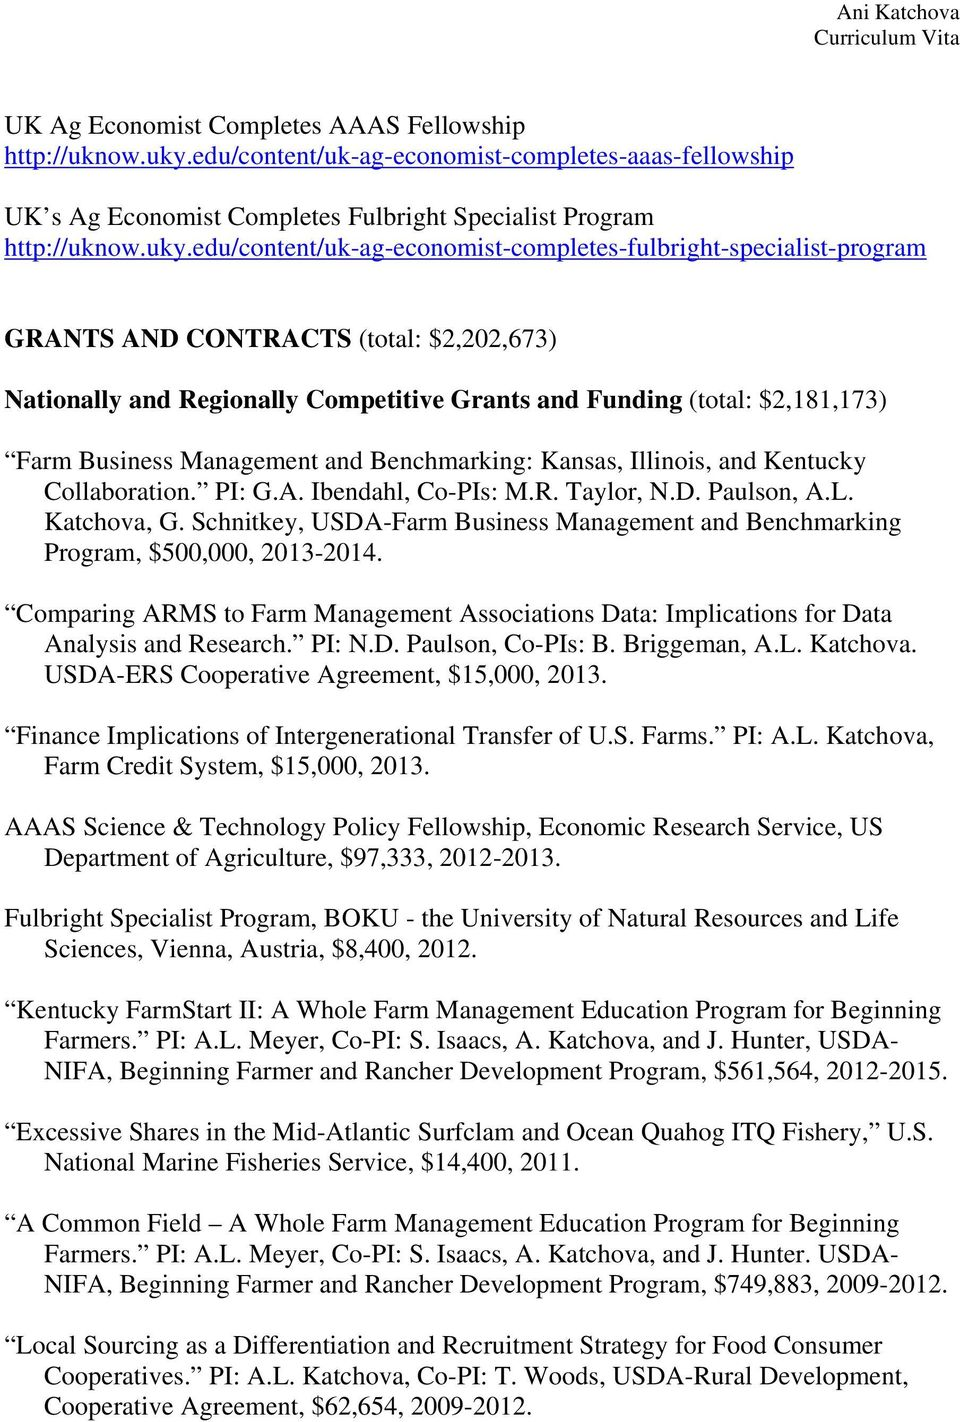 edu/content/uk-ag-economist-completes-fulbright-specialist-program GRANTS AND CONTRACTS (total: $2,202,673) Nationally and Regionally Competitive Grants and Funding (total: $2,181,173) Farm Business